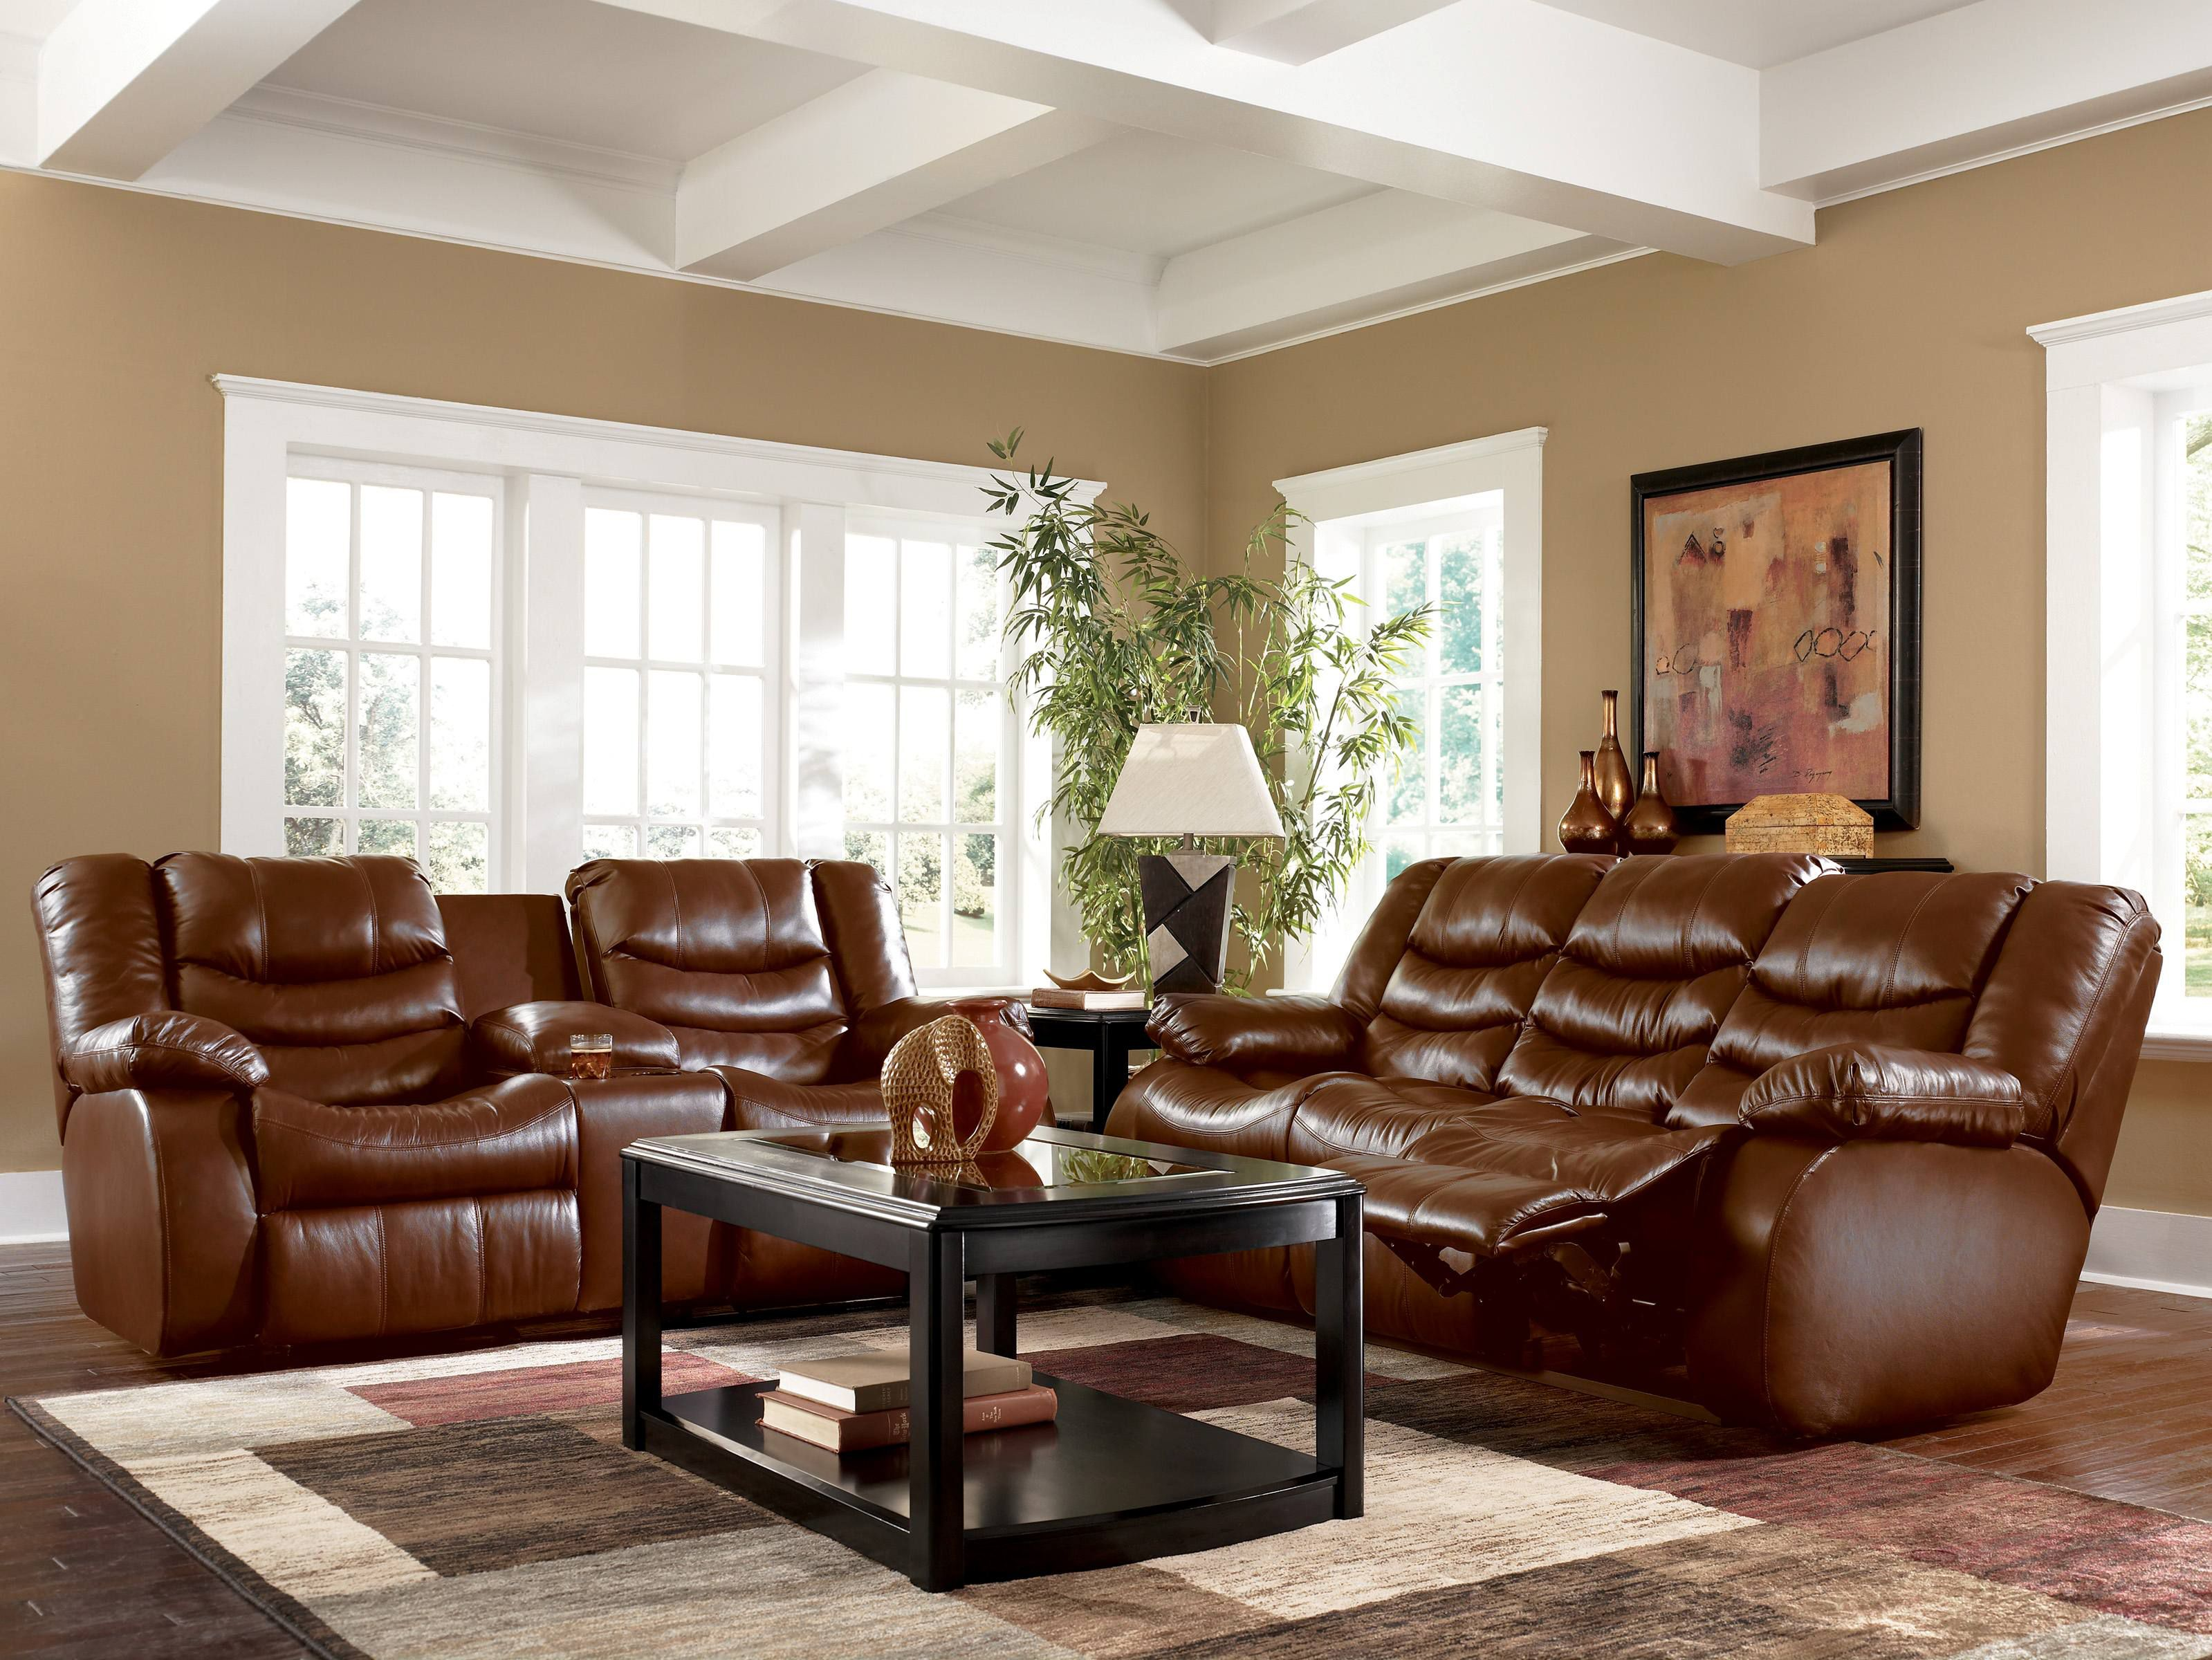 Best Living Room With Brown Couches I Like The White Around The Windows With The Tre… With Images 400 x 300